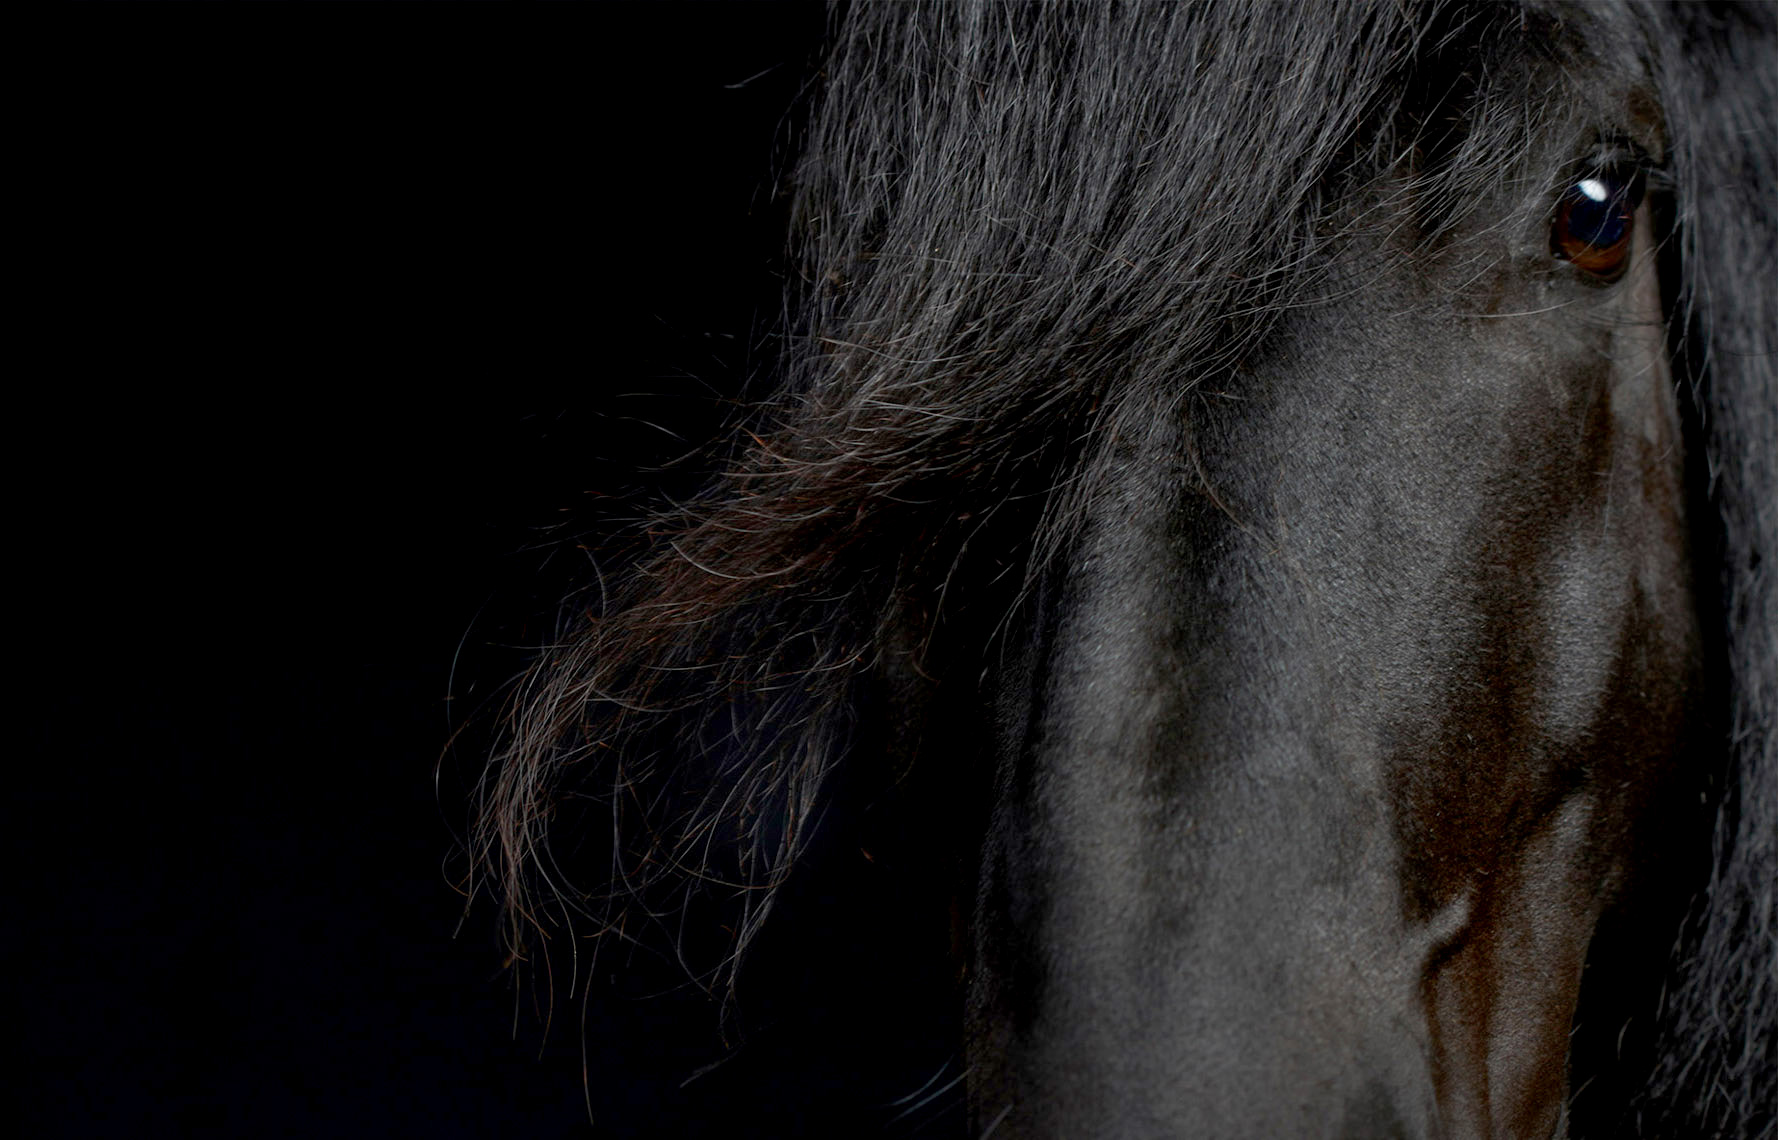 equine.horse.animal-photographer.peter-samuels.11